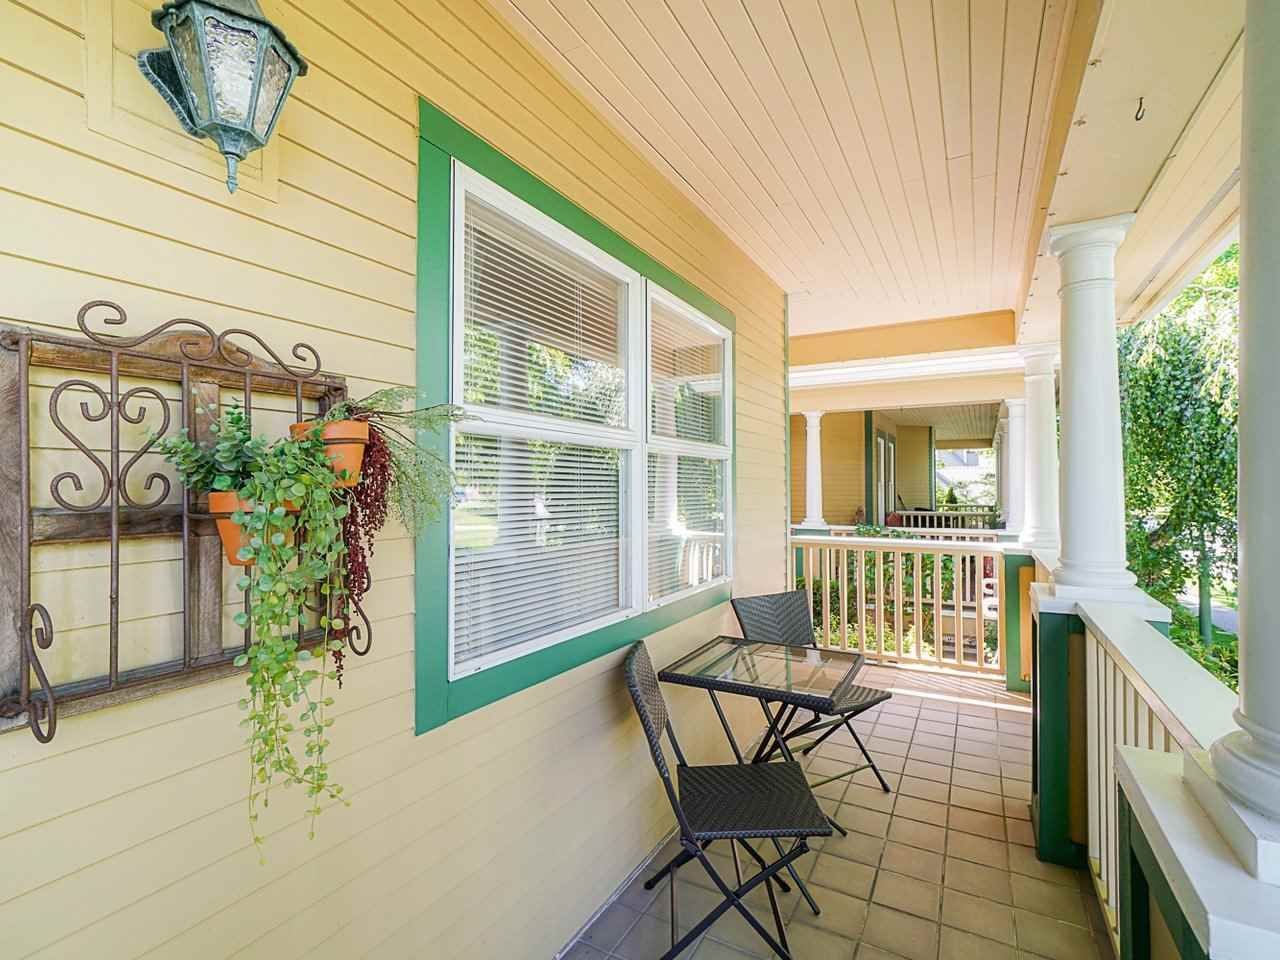 """Photo 6: Photos: 4 235 E KEITH Road in North Vancouver: Lower Lonsdale Townhouse for sale in """"Carriage Hill"""" : MLS®# R2471169"""